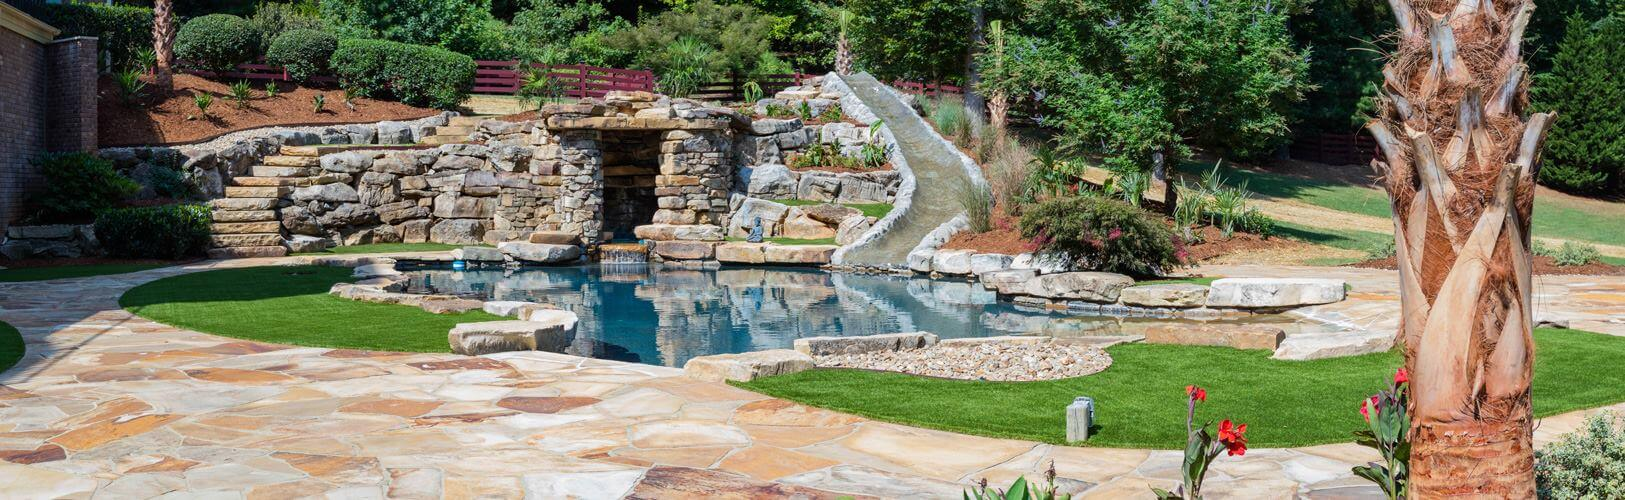 Beautiful pool and lawn landscaping job by Residential Landscaping Company Hicks Landscape in Raleigh